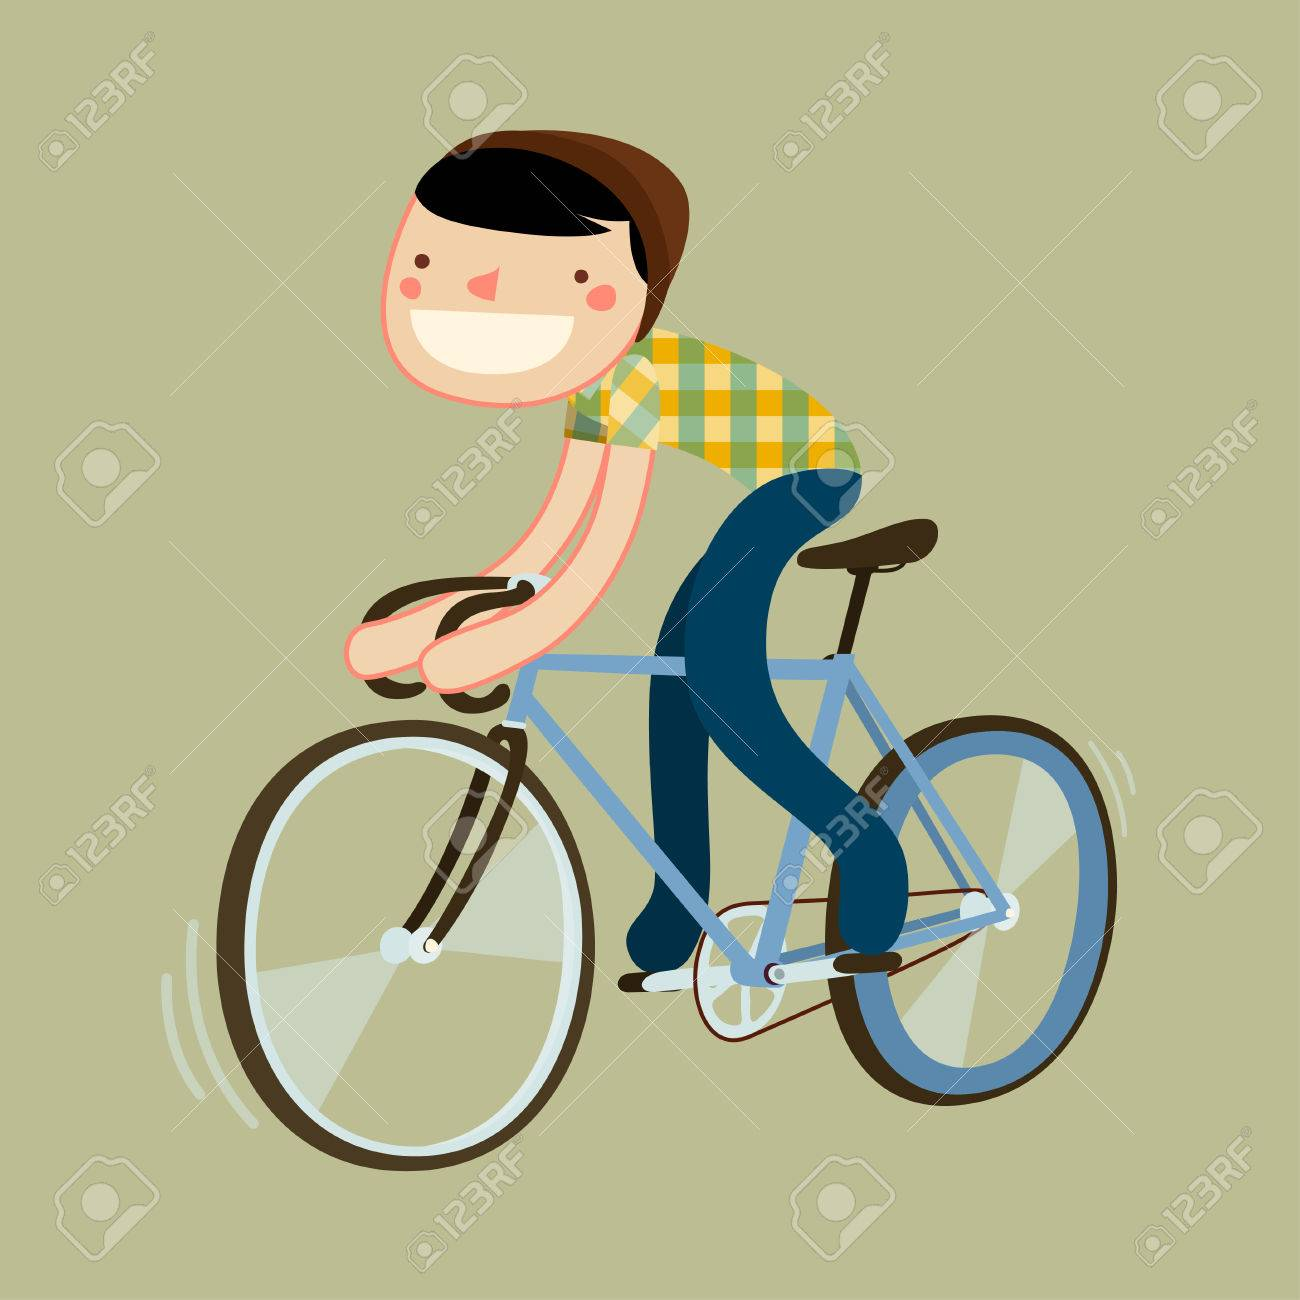 Hipster Riding Fixie Boy Riding Road Bike Character Isolated